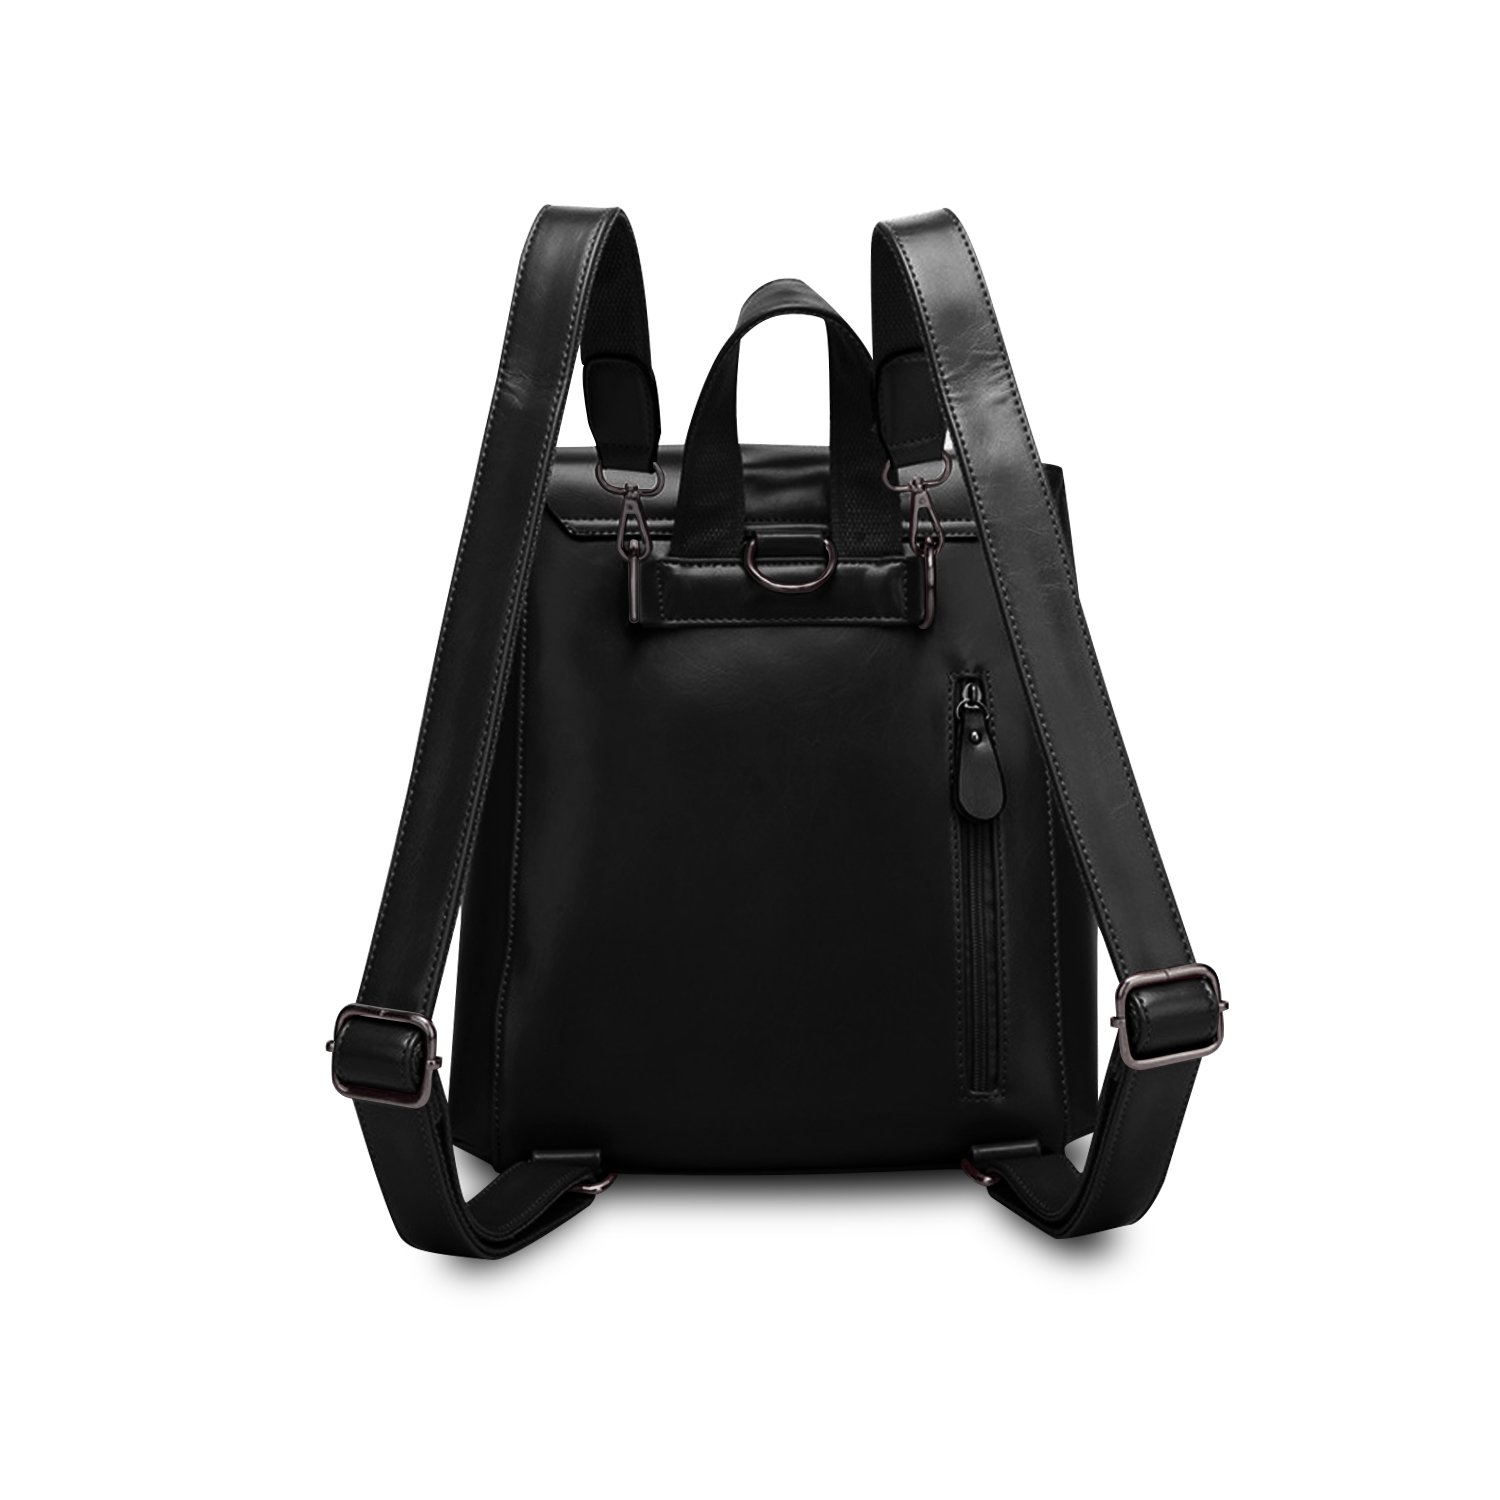 Women Leather Backpack,ZZSY Vintage Fashion Schoolbag Ladies Flap Daypack Shoulder Bag for College Girls by ZZSY (Image #3)